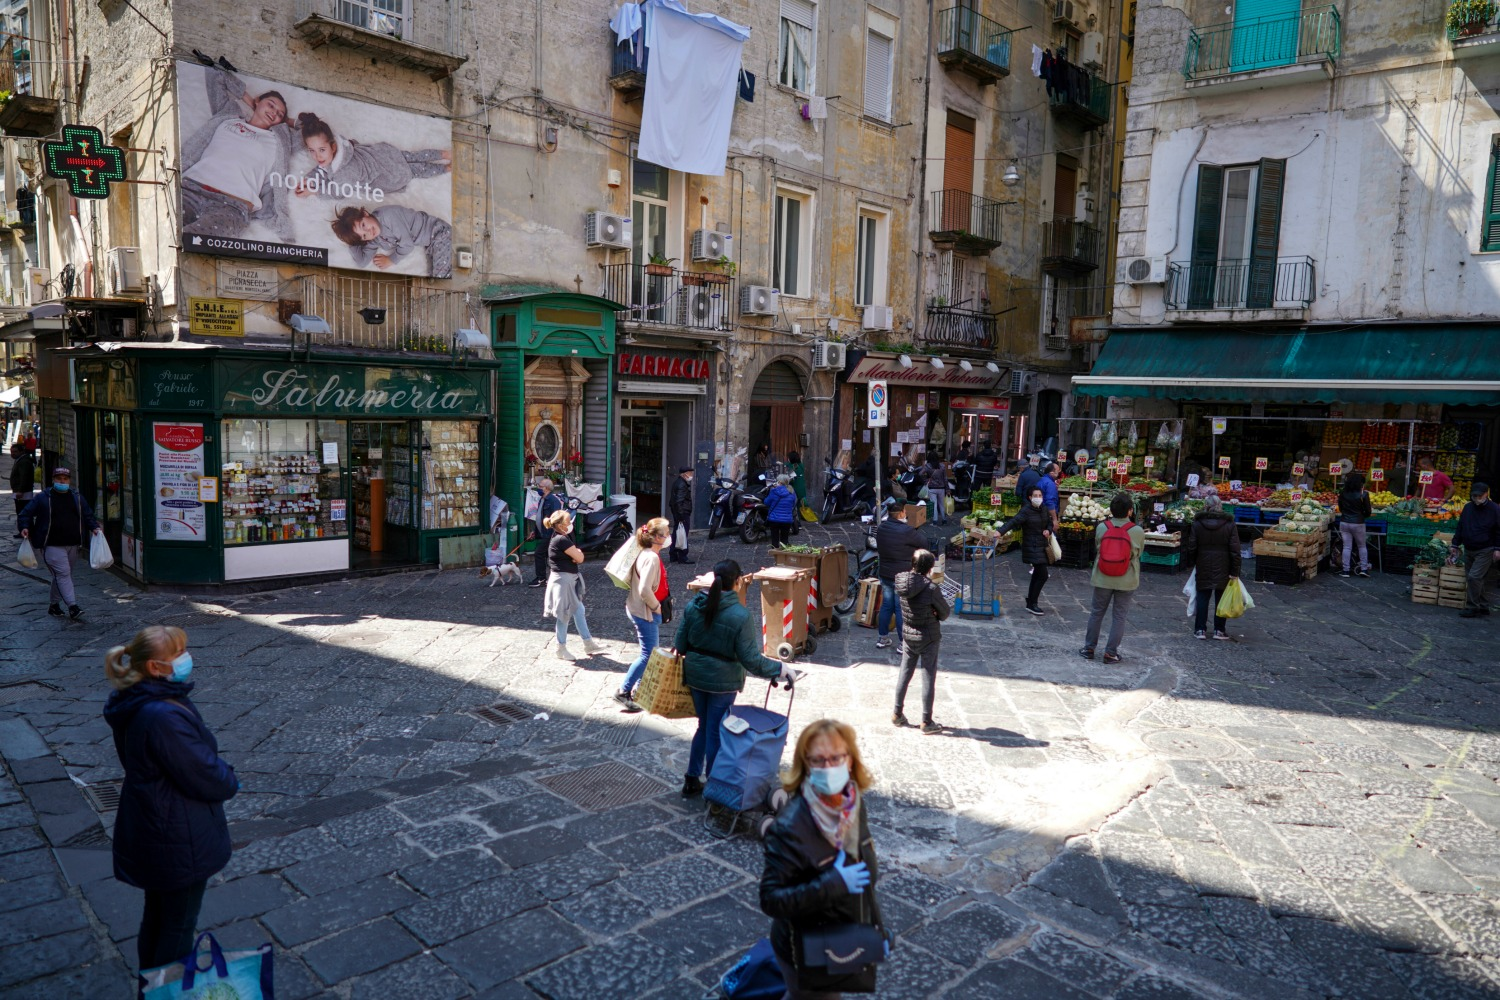 People shopping in Naples, Italy.